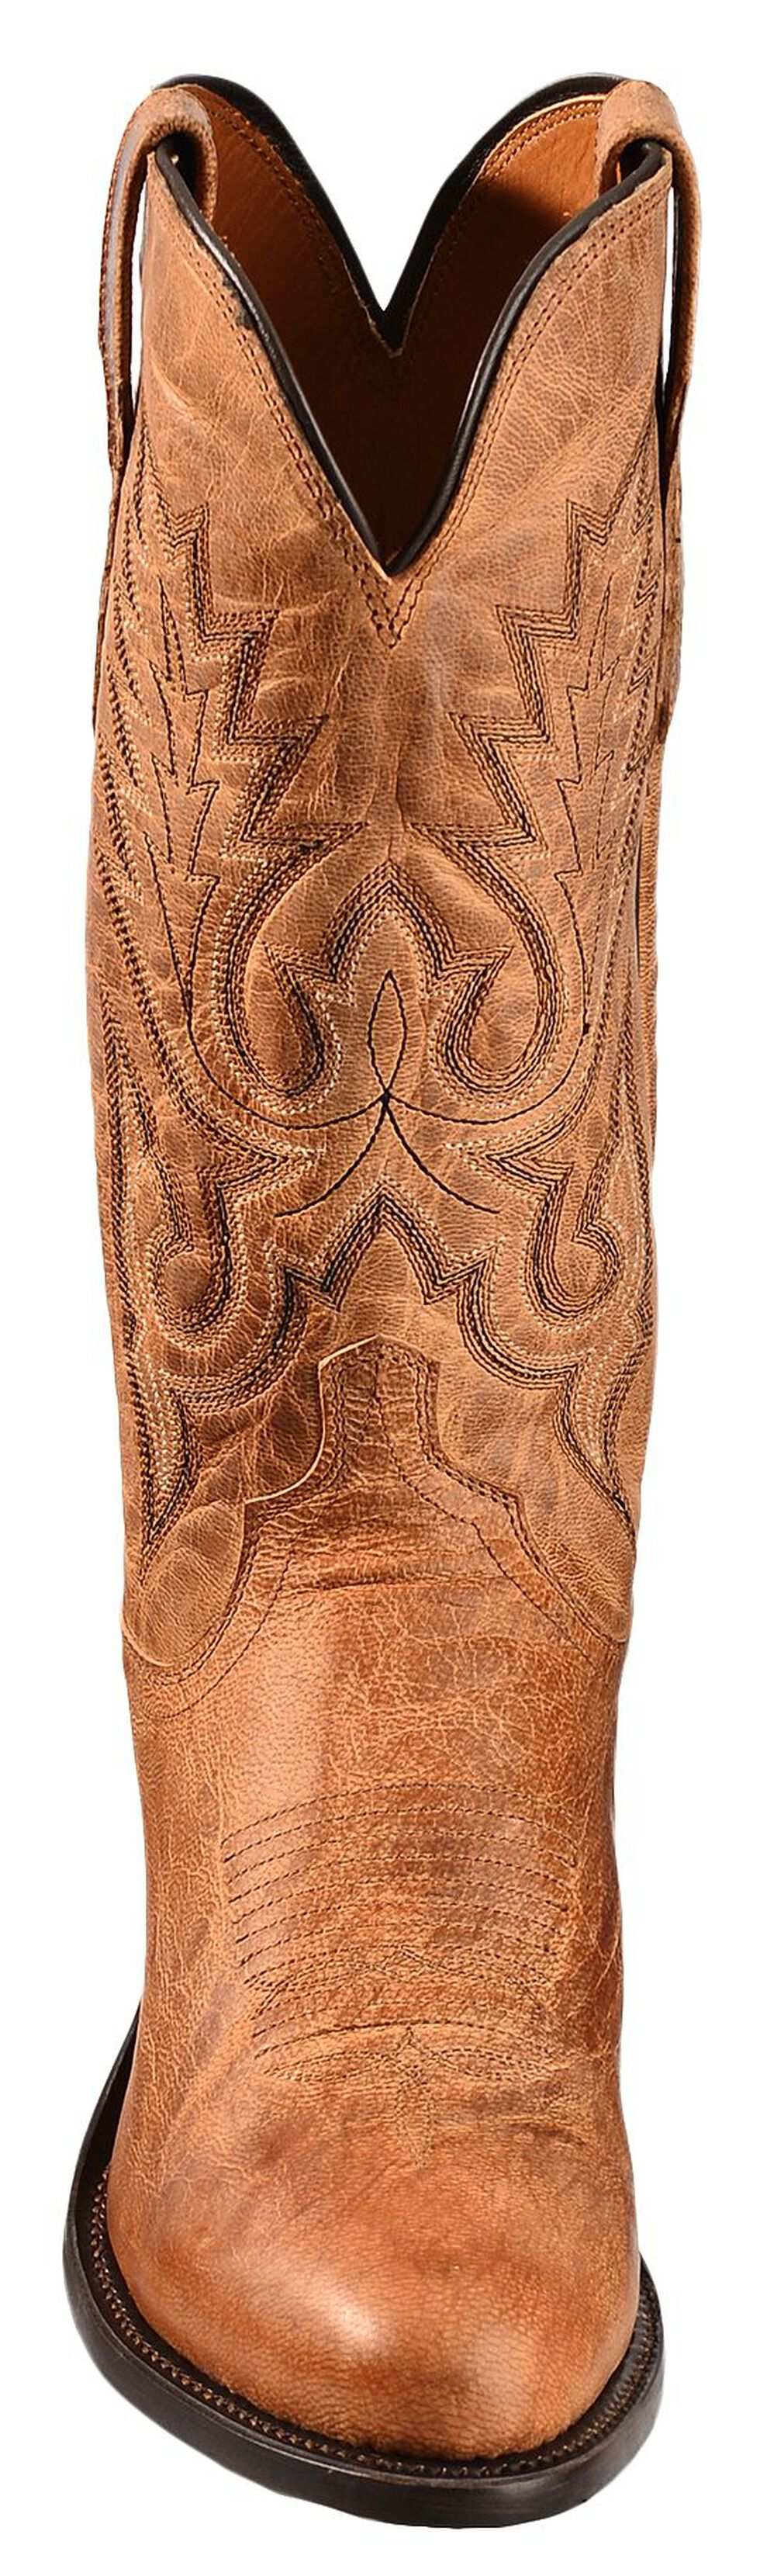 Lucchese Handmade 1883 Tan Mad Dog Goatskin Cowboy Boots - Round Toe, Tan, hi-res